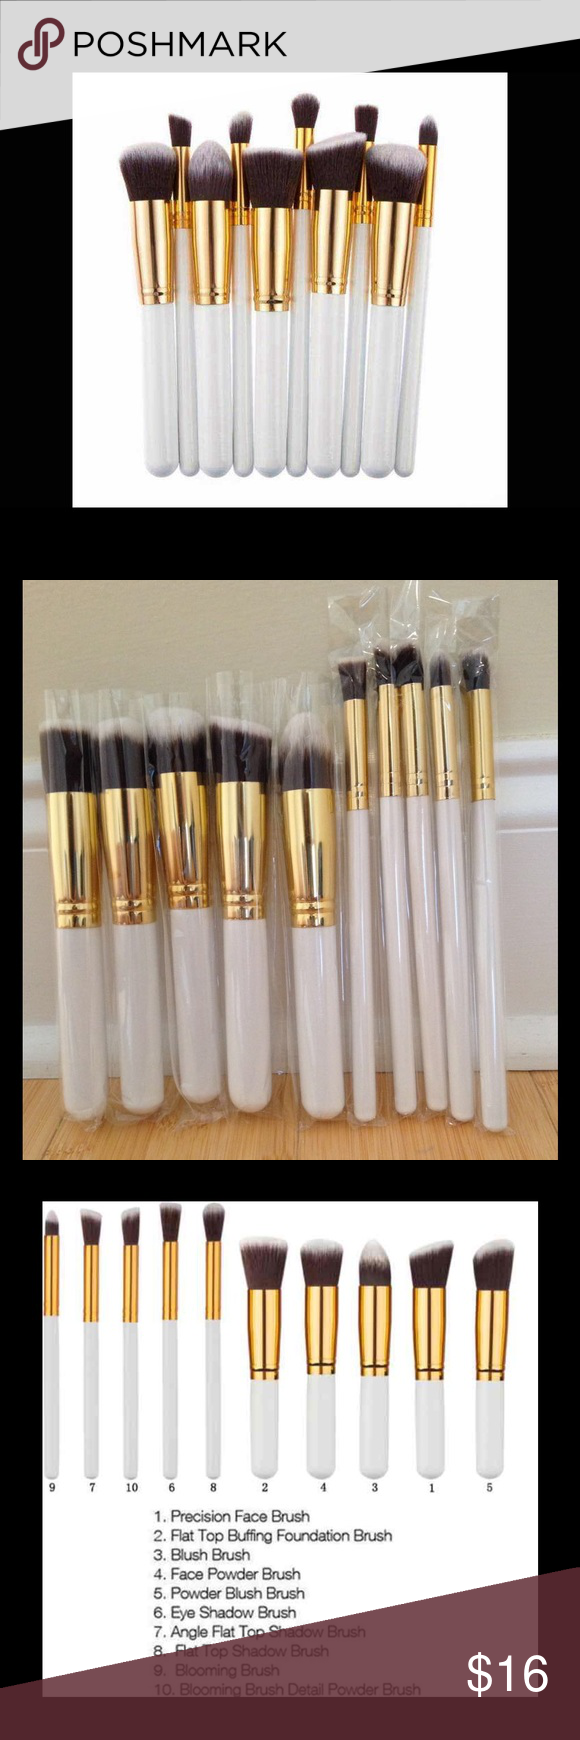 10pcs Makeup Brushes Set 10pcs makeup Brush Set Cosmetic Liquid Foundation Blending Blush   About the product: -Brush Material : Synthetic Hair, Mink Hair -Large size: 15.5x2x2cm -Small size: 18.5x0.8x0.8cm -Product size (LxWxH): 15.5x 2x 2cm/6.09x 0.79x0.79 inches -Package size(LxWxH): 20x 5x 5cm/ 7.86x1.97x 1.97 inches -Package Contents: 5x Large Brushes and 5x Small Brushes Makeup Brushes & Tools